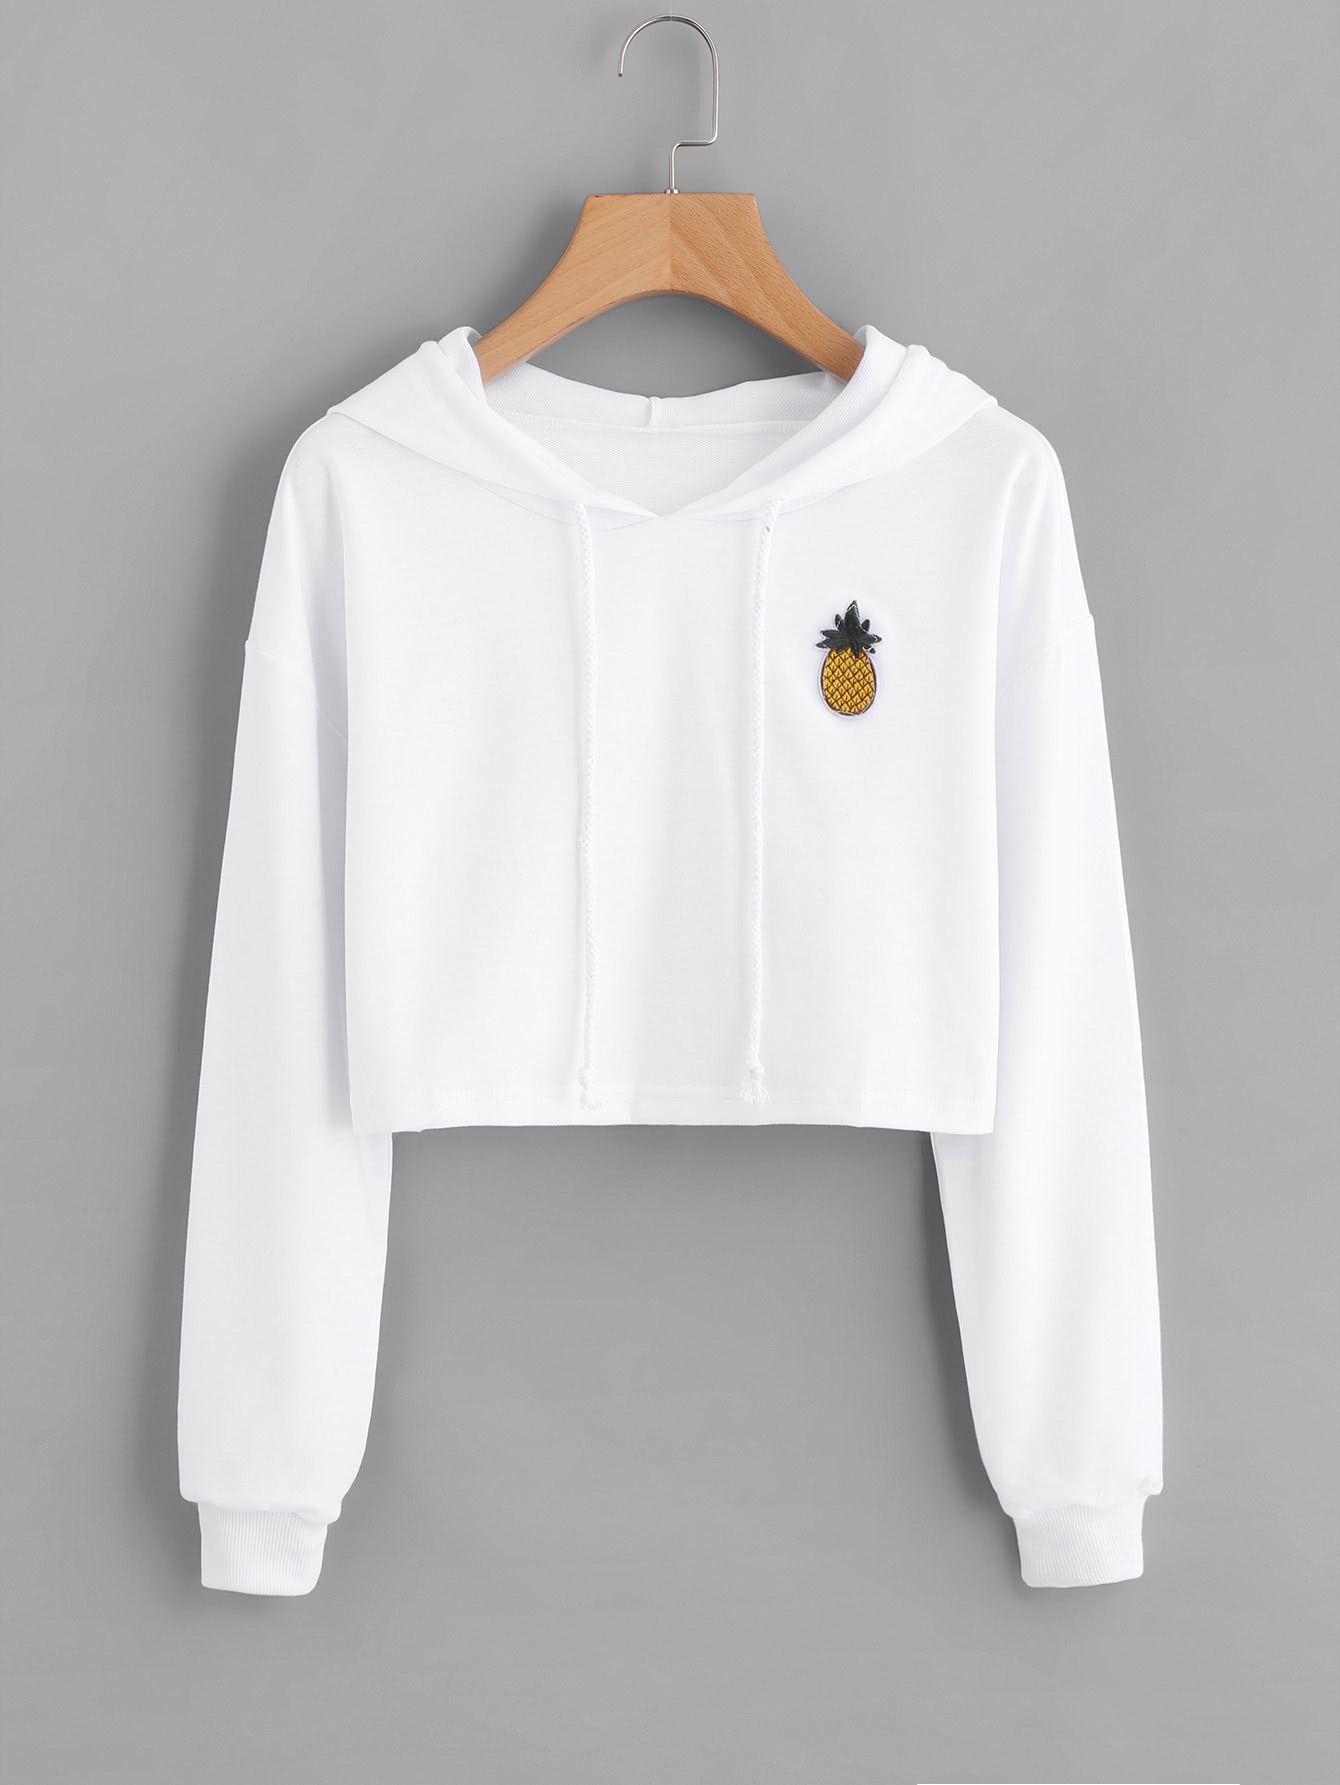 2990eb0f12 Shop Pineapple Patch Crop Hoodie online. SheIn offers Pineapple Patch Crop  Hoodie & more to fit your fashionable needs.